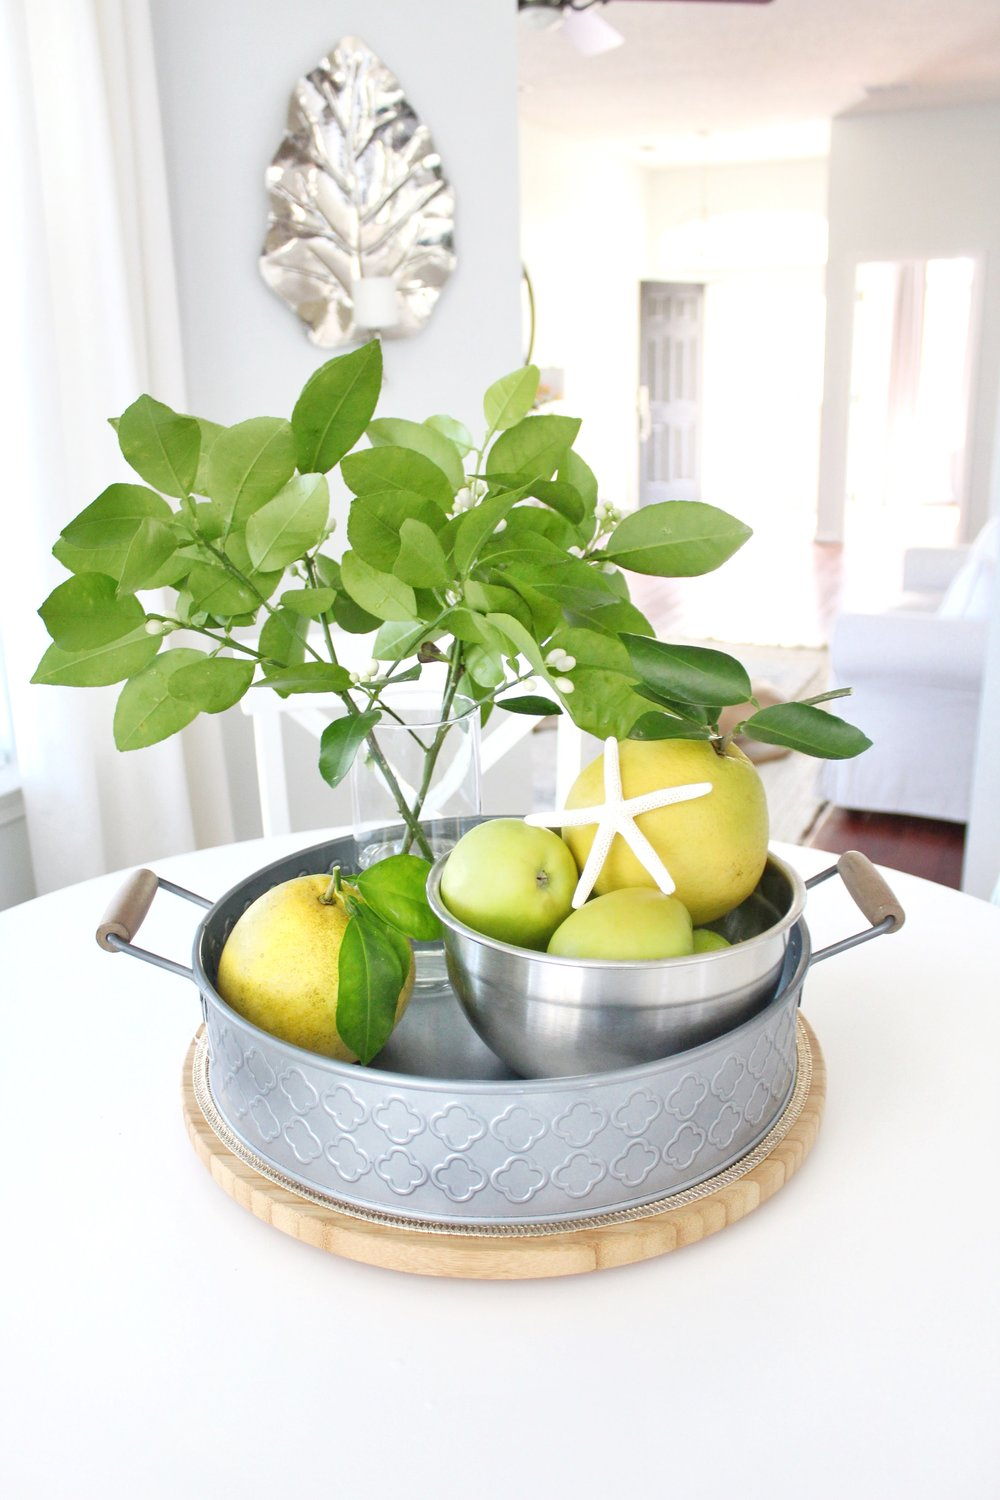 Add New Life to Your Home With This New Year's Resolution | House Full of Summer blog adding greenery to your home, decorating with plants, fronds, trimmings, winter decor, home decor, coastal interior ideas, coastal chic, grapefruit tree, tropical greenery, kitchen decor, breakfast nook decor